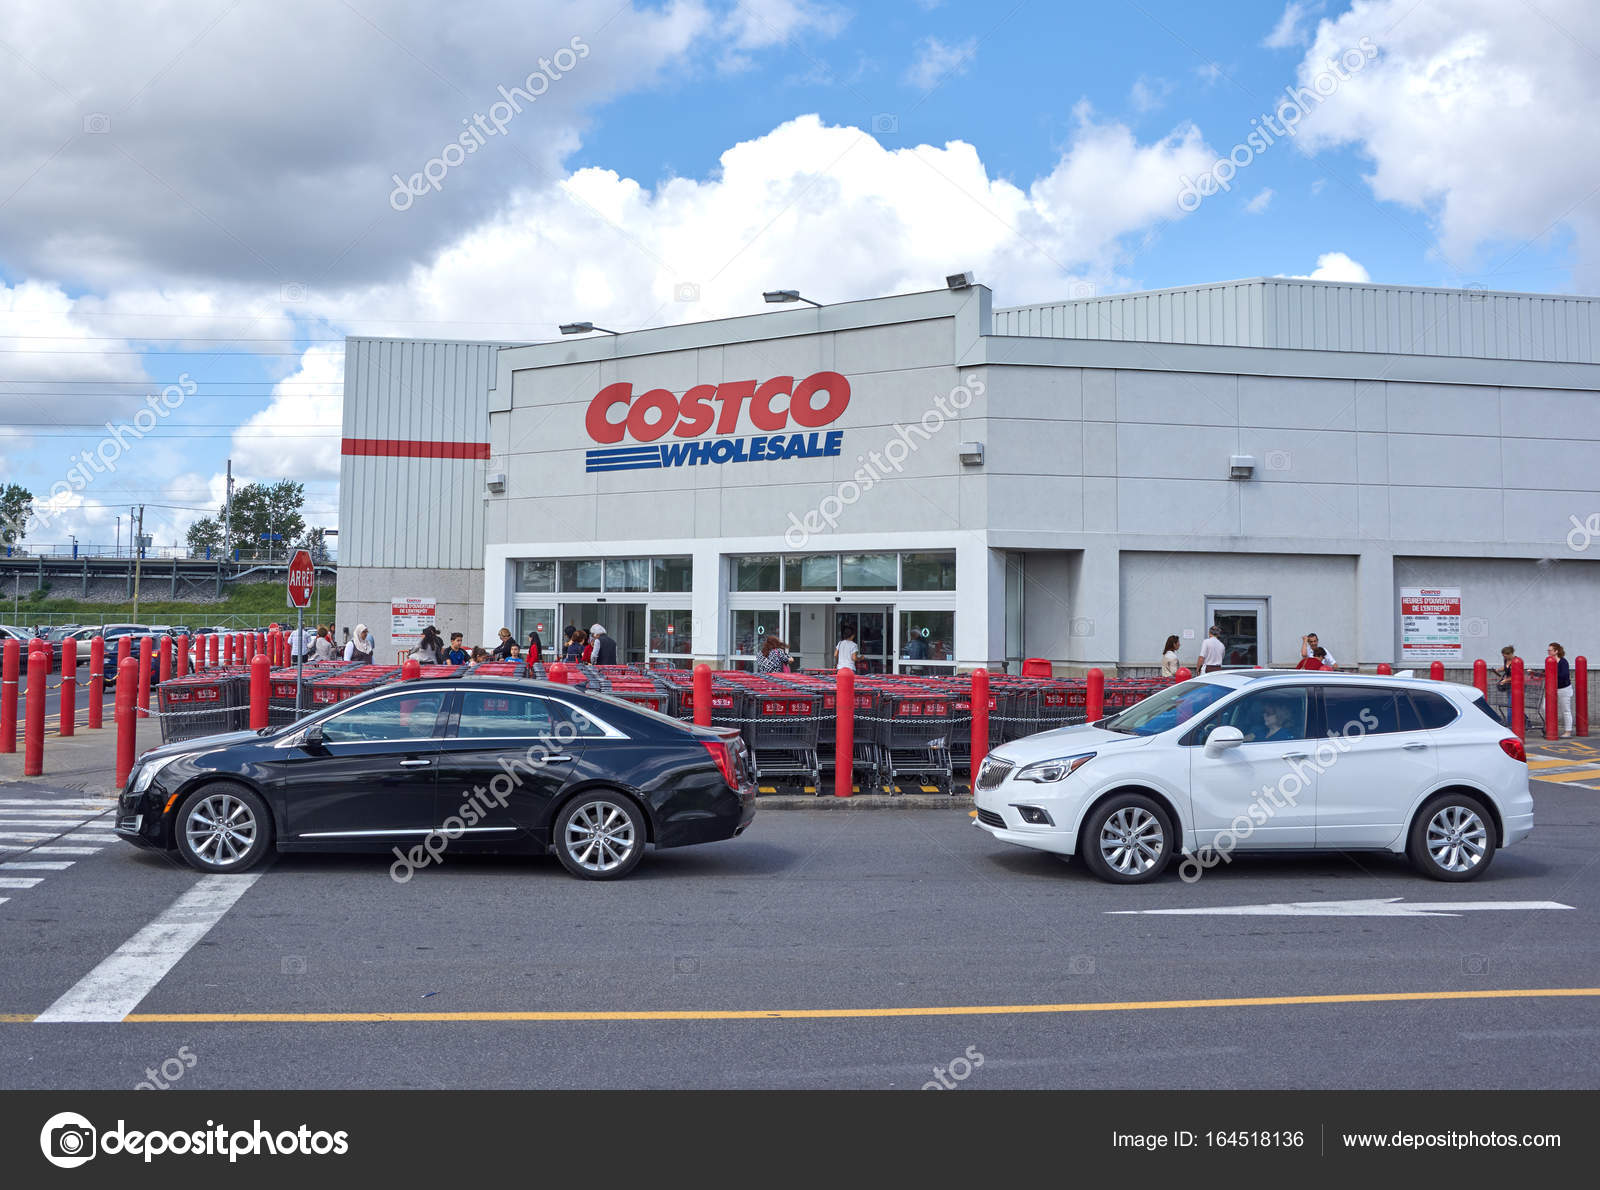 Costco wholesale store and logo stock editorial photo dennizn costco wholesale corporation trading as costco is the largest american membership only warehouse club photo by dennizn thecheapjerseys Gallery